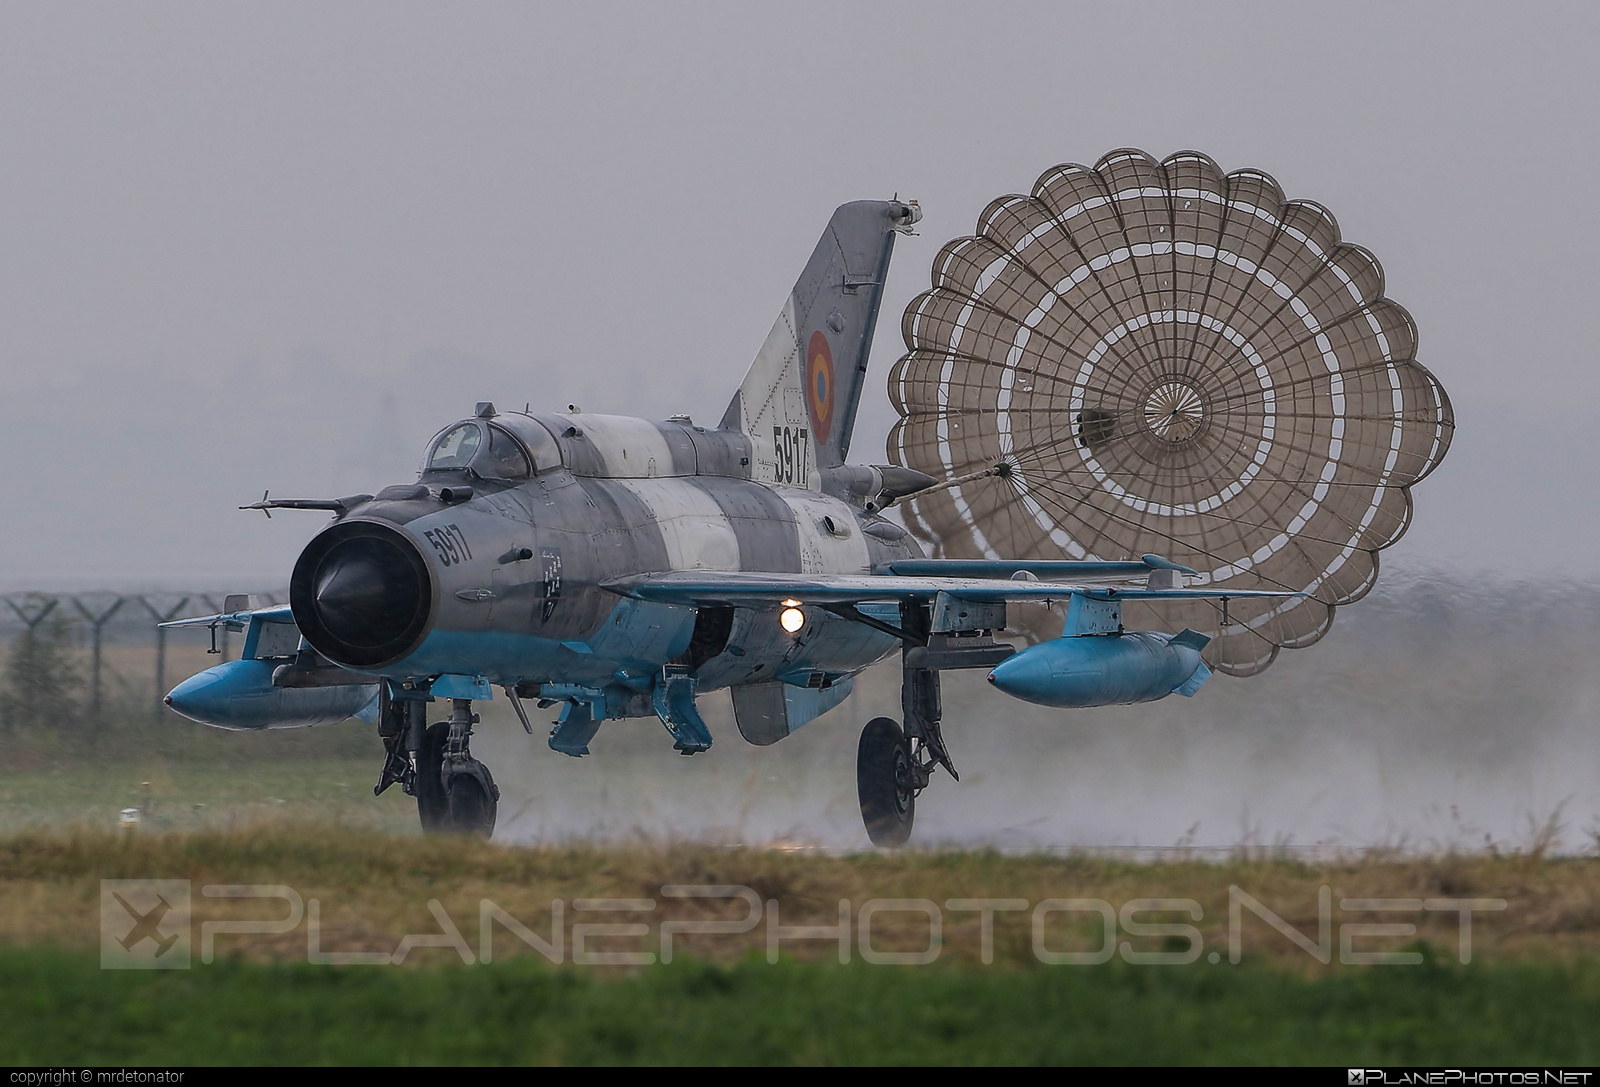 Mikoyan-Gurevich MiG-21MF - 5917 operated by Forţele Aeriene Române (Romanian Air Force) #forteleaerieneromane #mig #mig21 #mig21mf #mikoyangurevich #romanianairforce